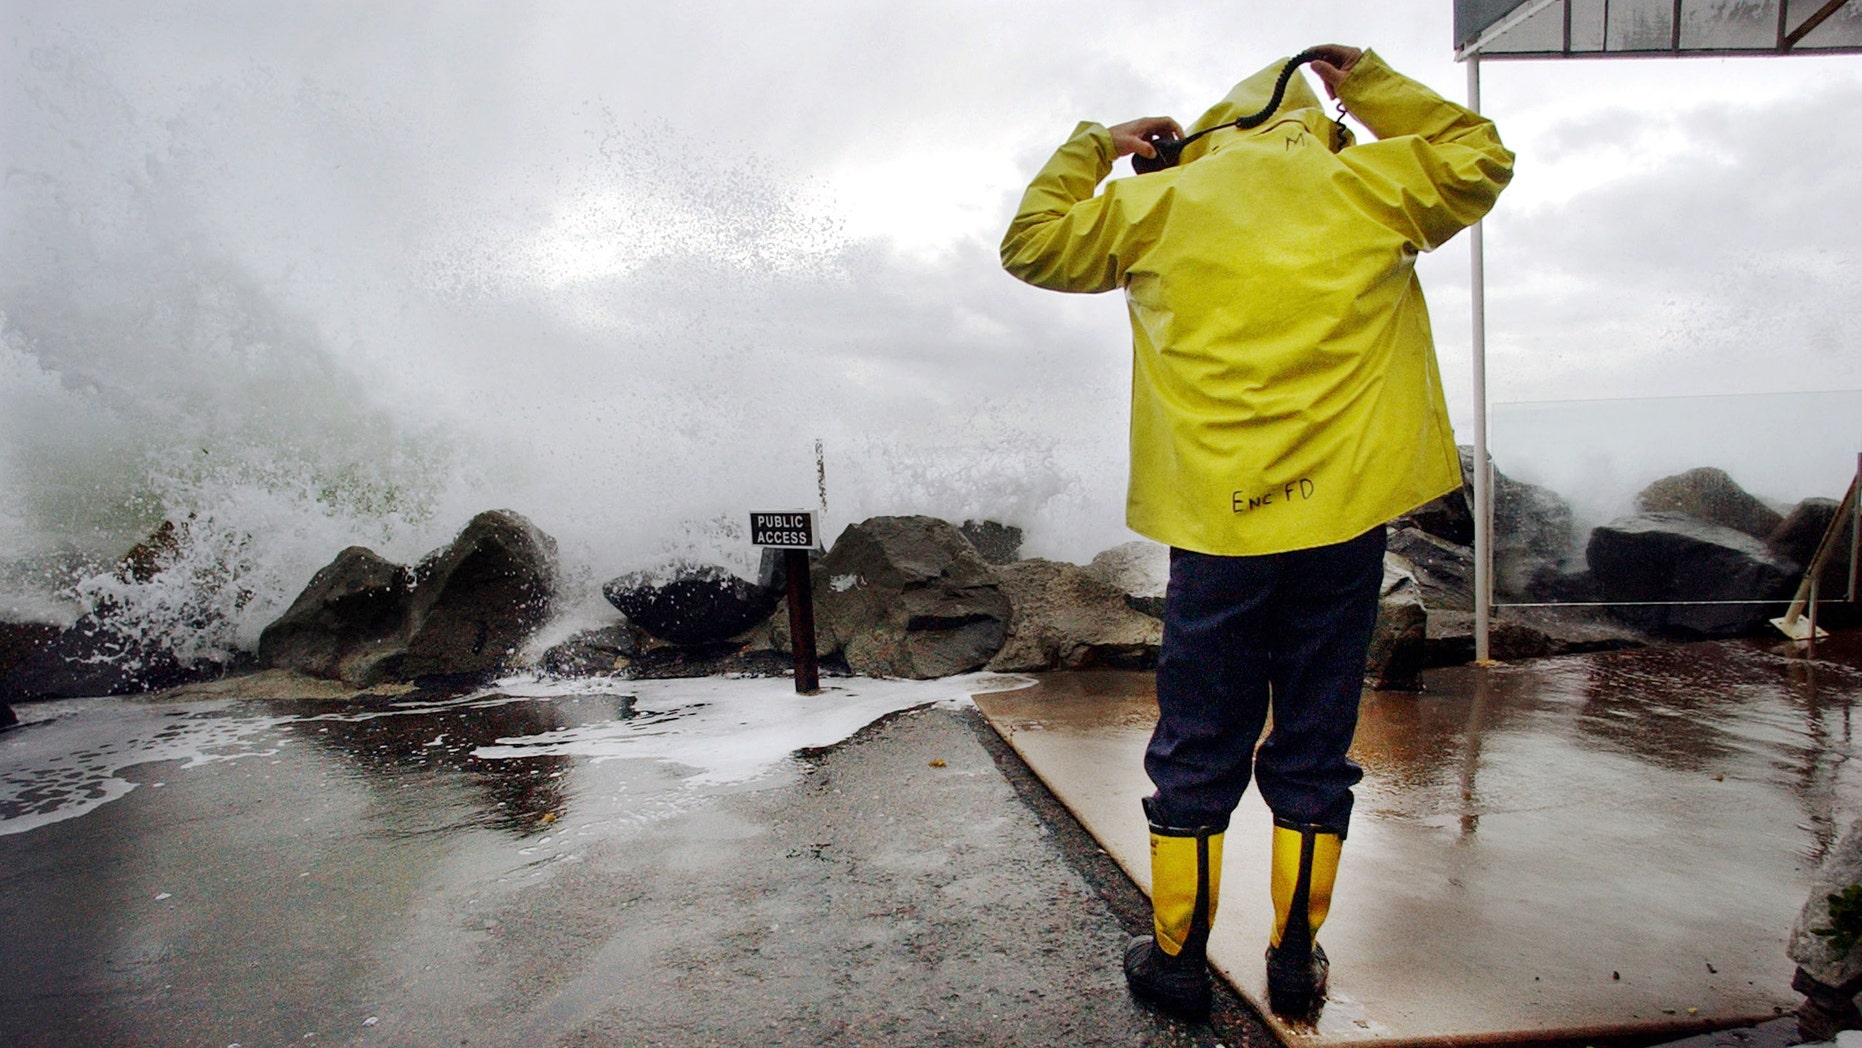 CARDIFF BY THE SEA, CA - DECEMBER 20:  Encinitas fireman Mike Kemp adjusts his hood as a wave crashes over a sea wall December 20, 2002 in Cardiff By the Sea, California. Heavy rains and large surf pounded the West Coast as a product of El Nino with the region expecting above average rainfall totals this winter due to El Nino.  (Photo by Sandy Huffaker/Getty Images)